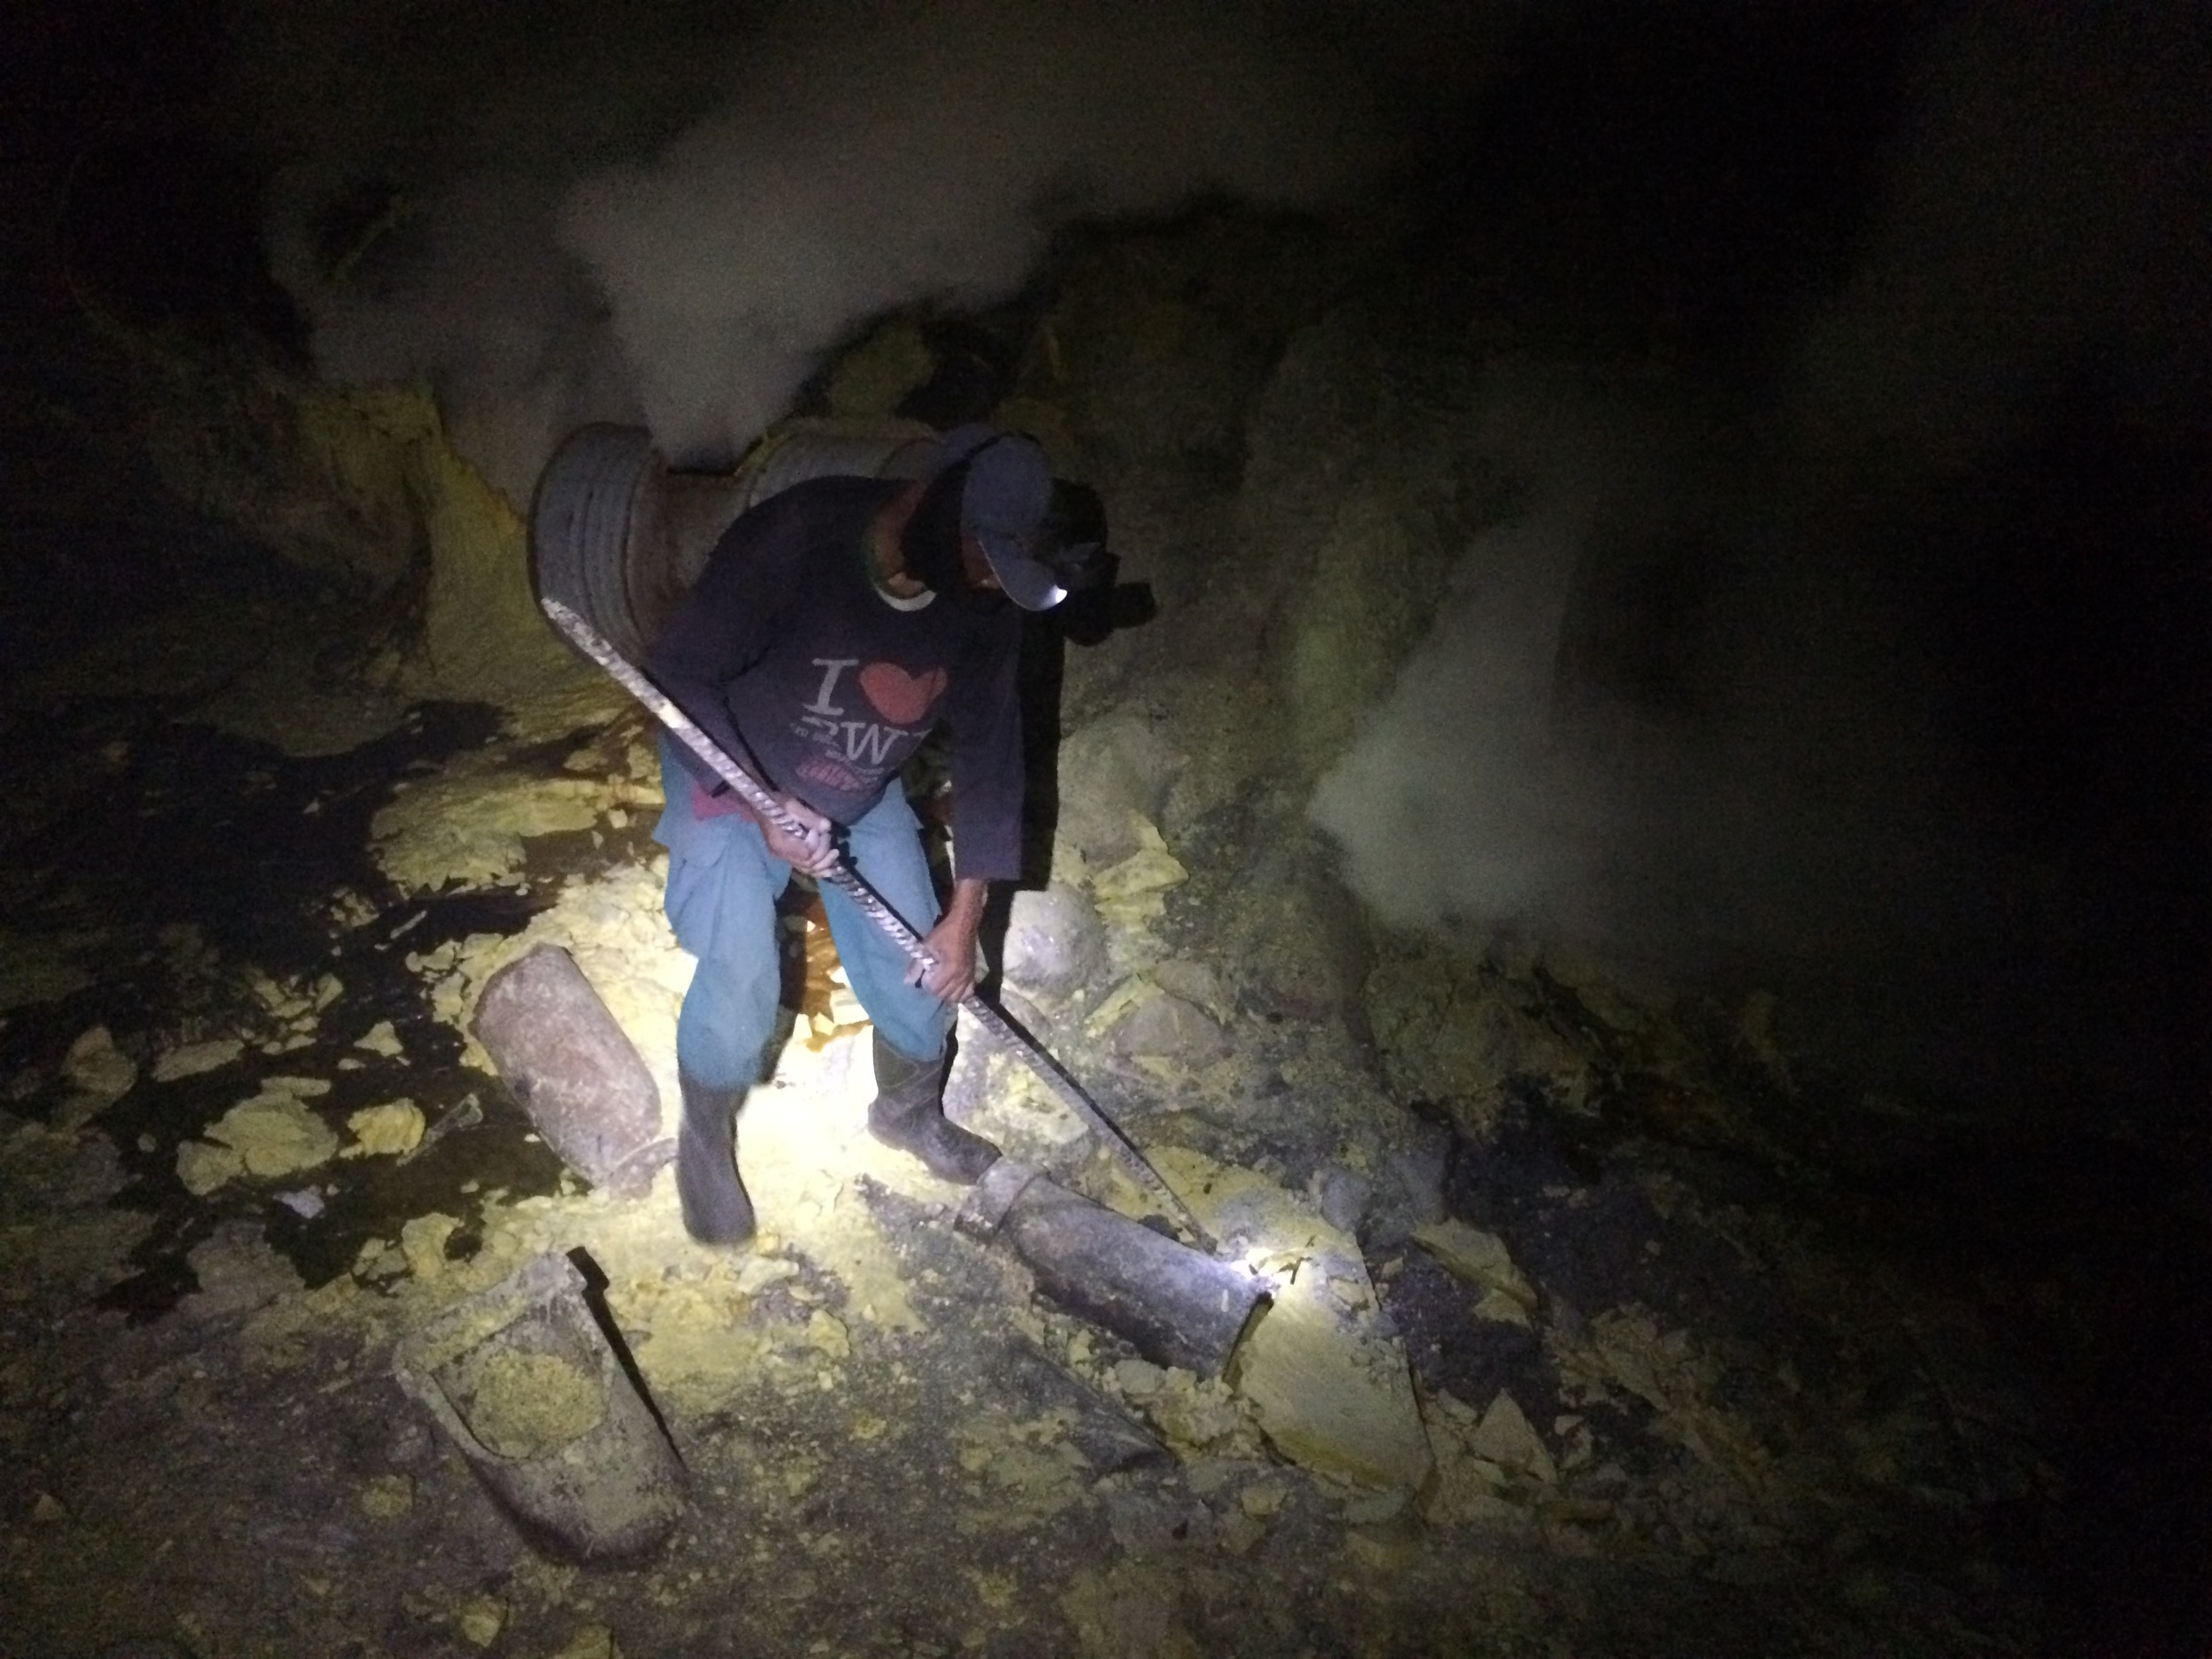 Miner chipping away pieces of sulfur